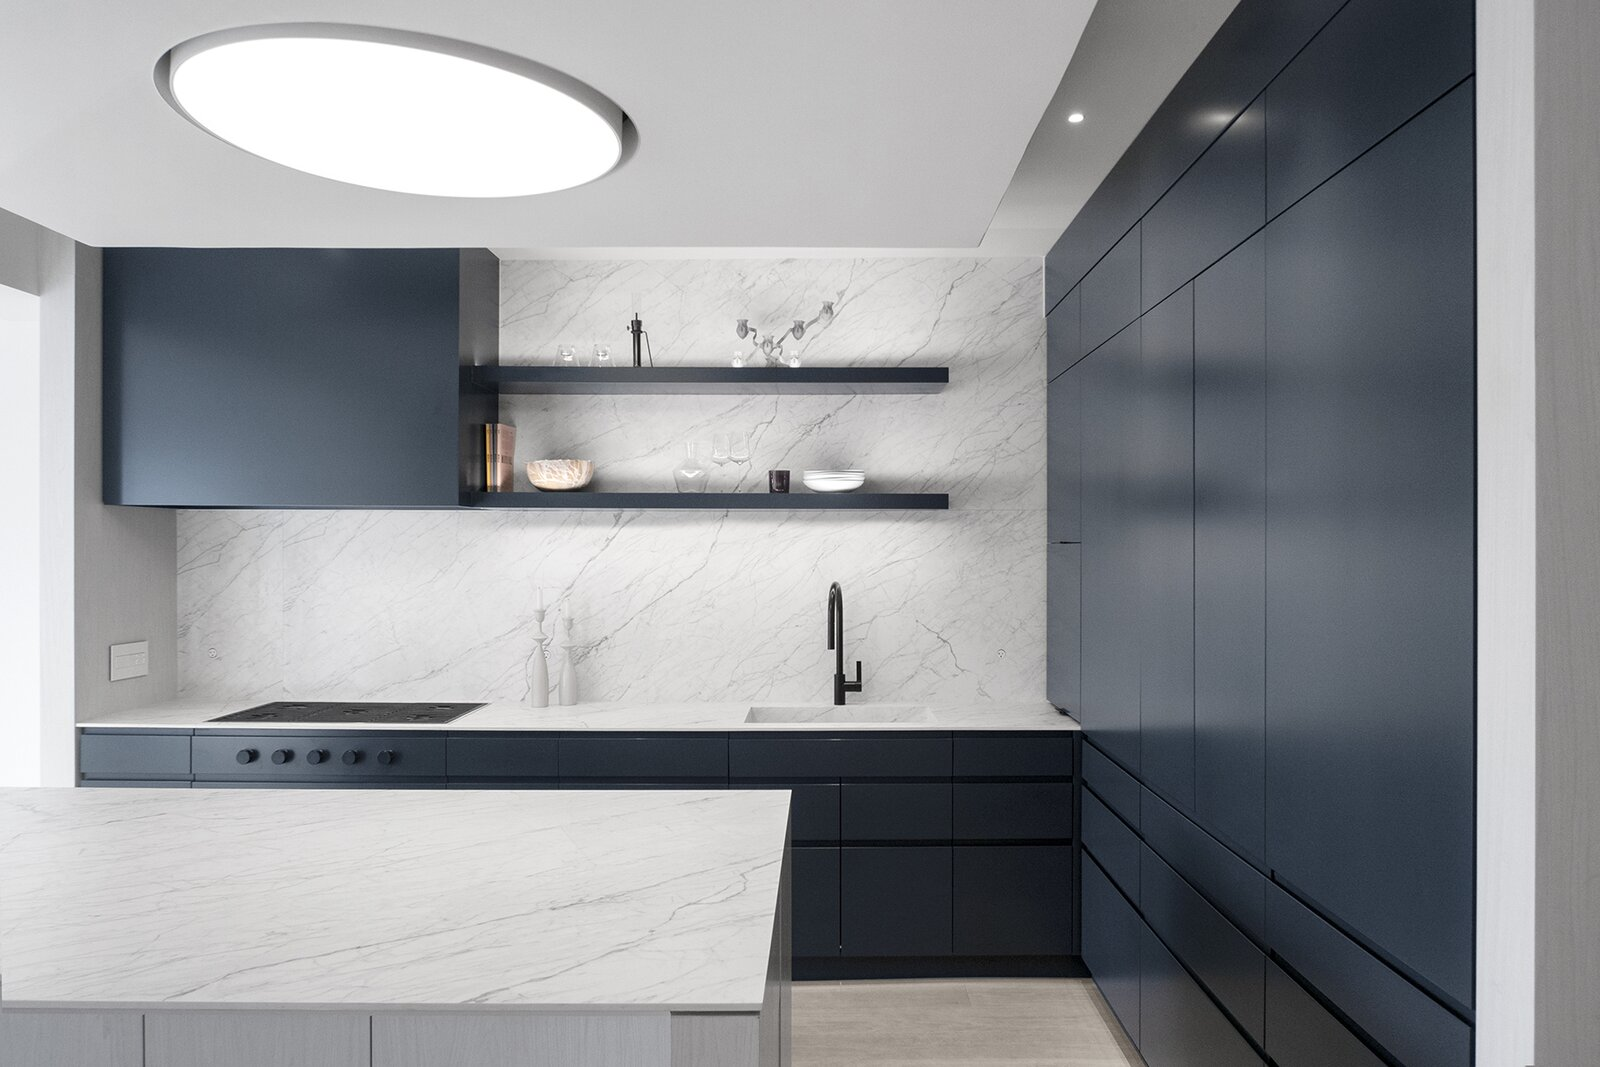 Kitchen of Walker Residence by Reflect Architecture.